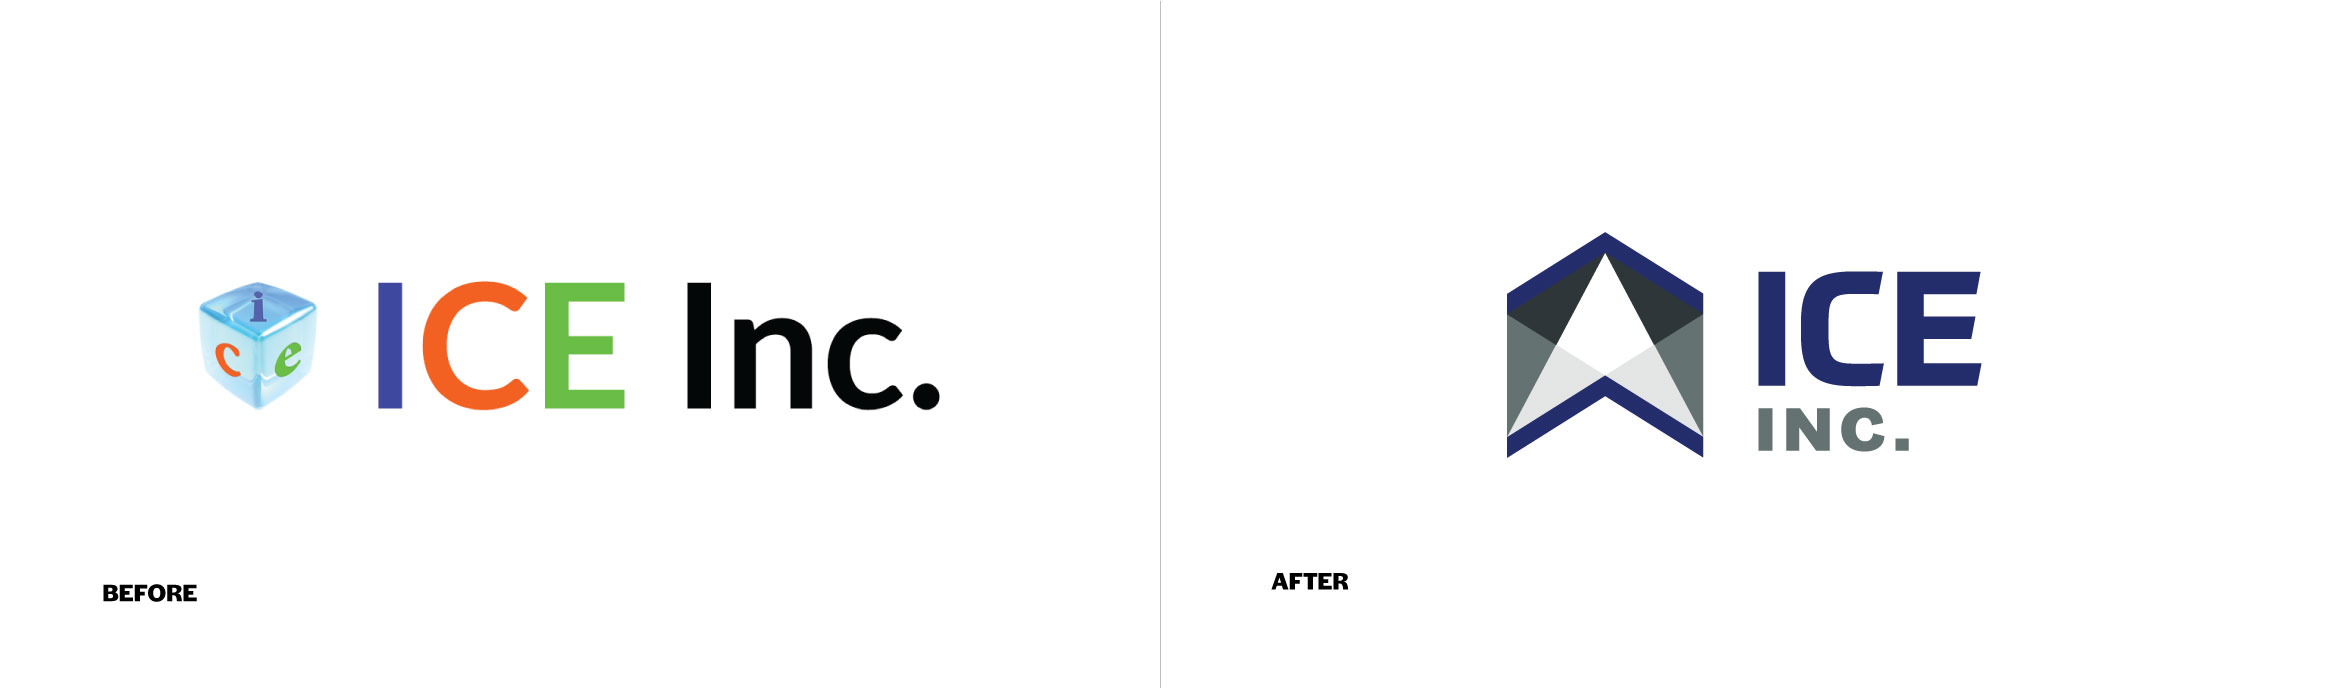 ICE---Before-&-After-Logo--1.0.jpg